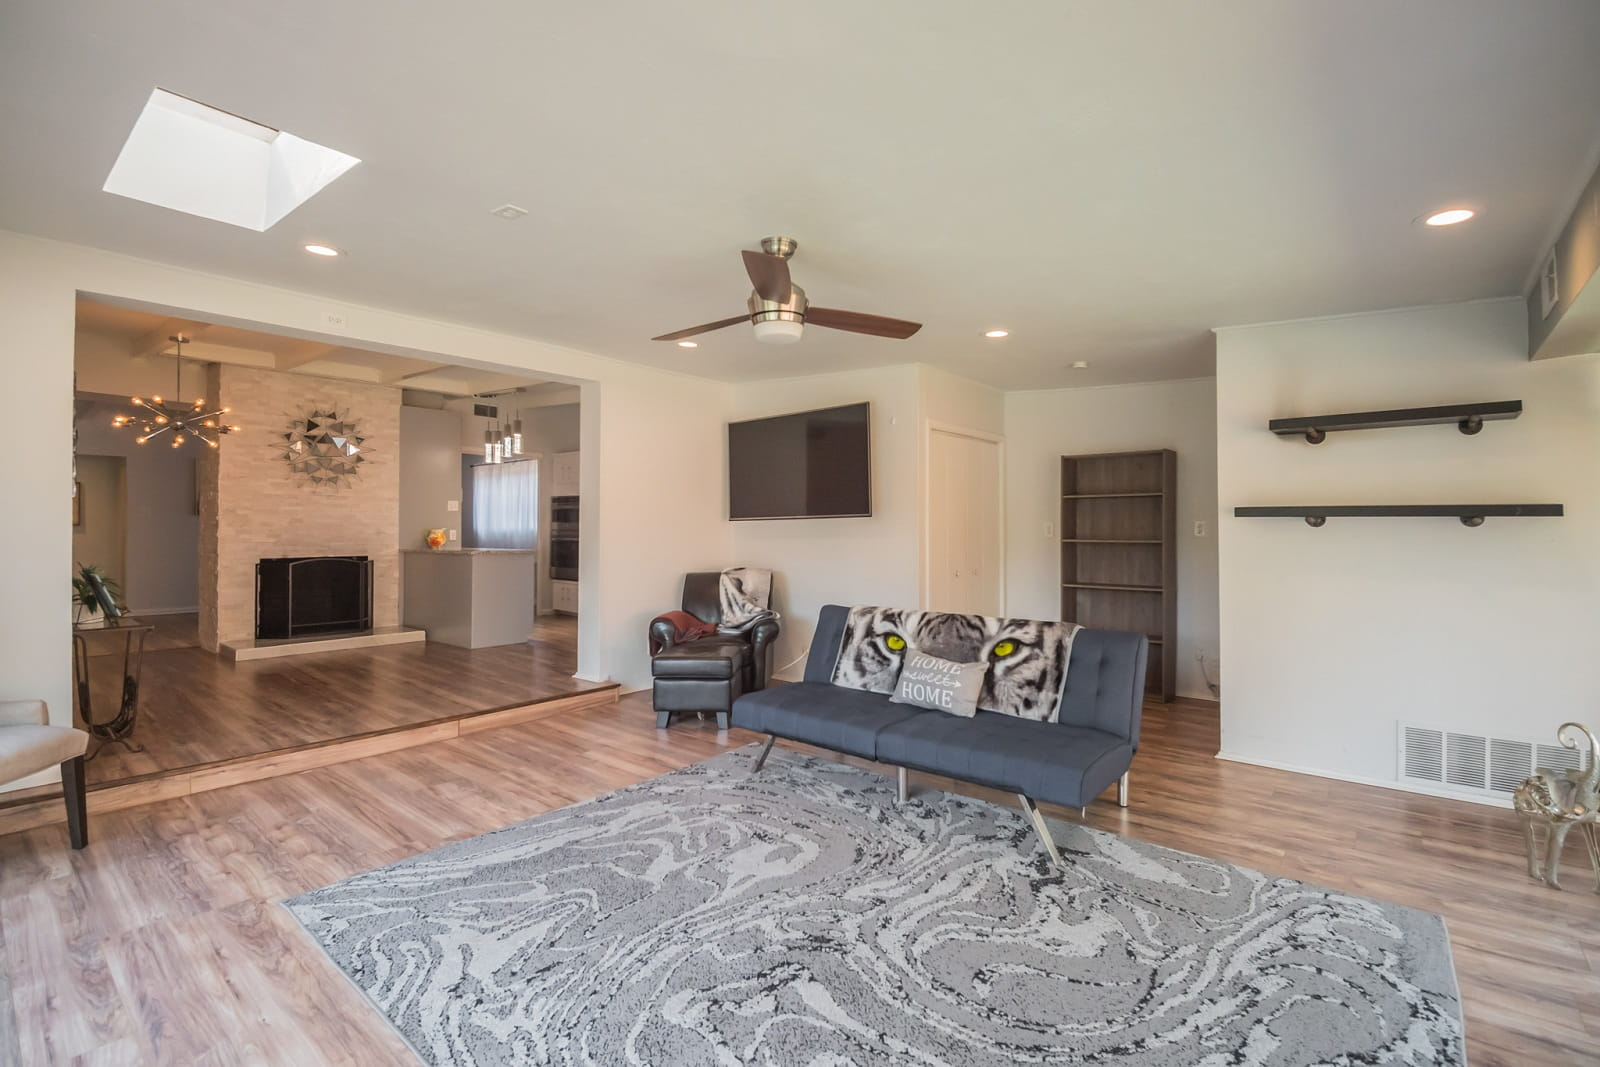 Real Estate Photography in Garland - TX - Living Area View